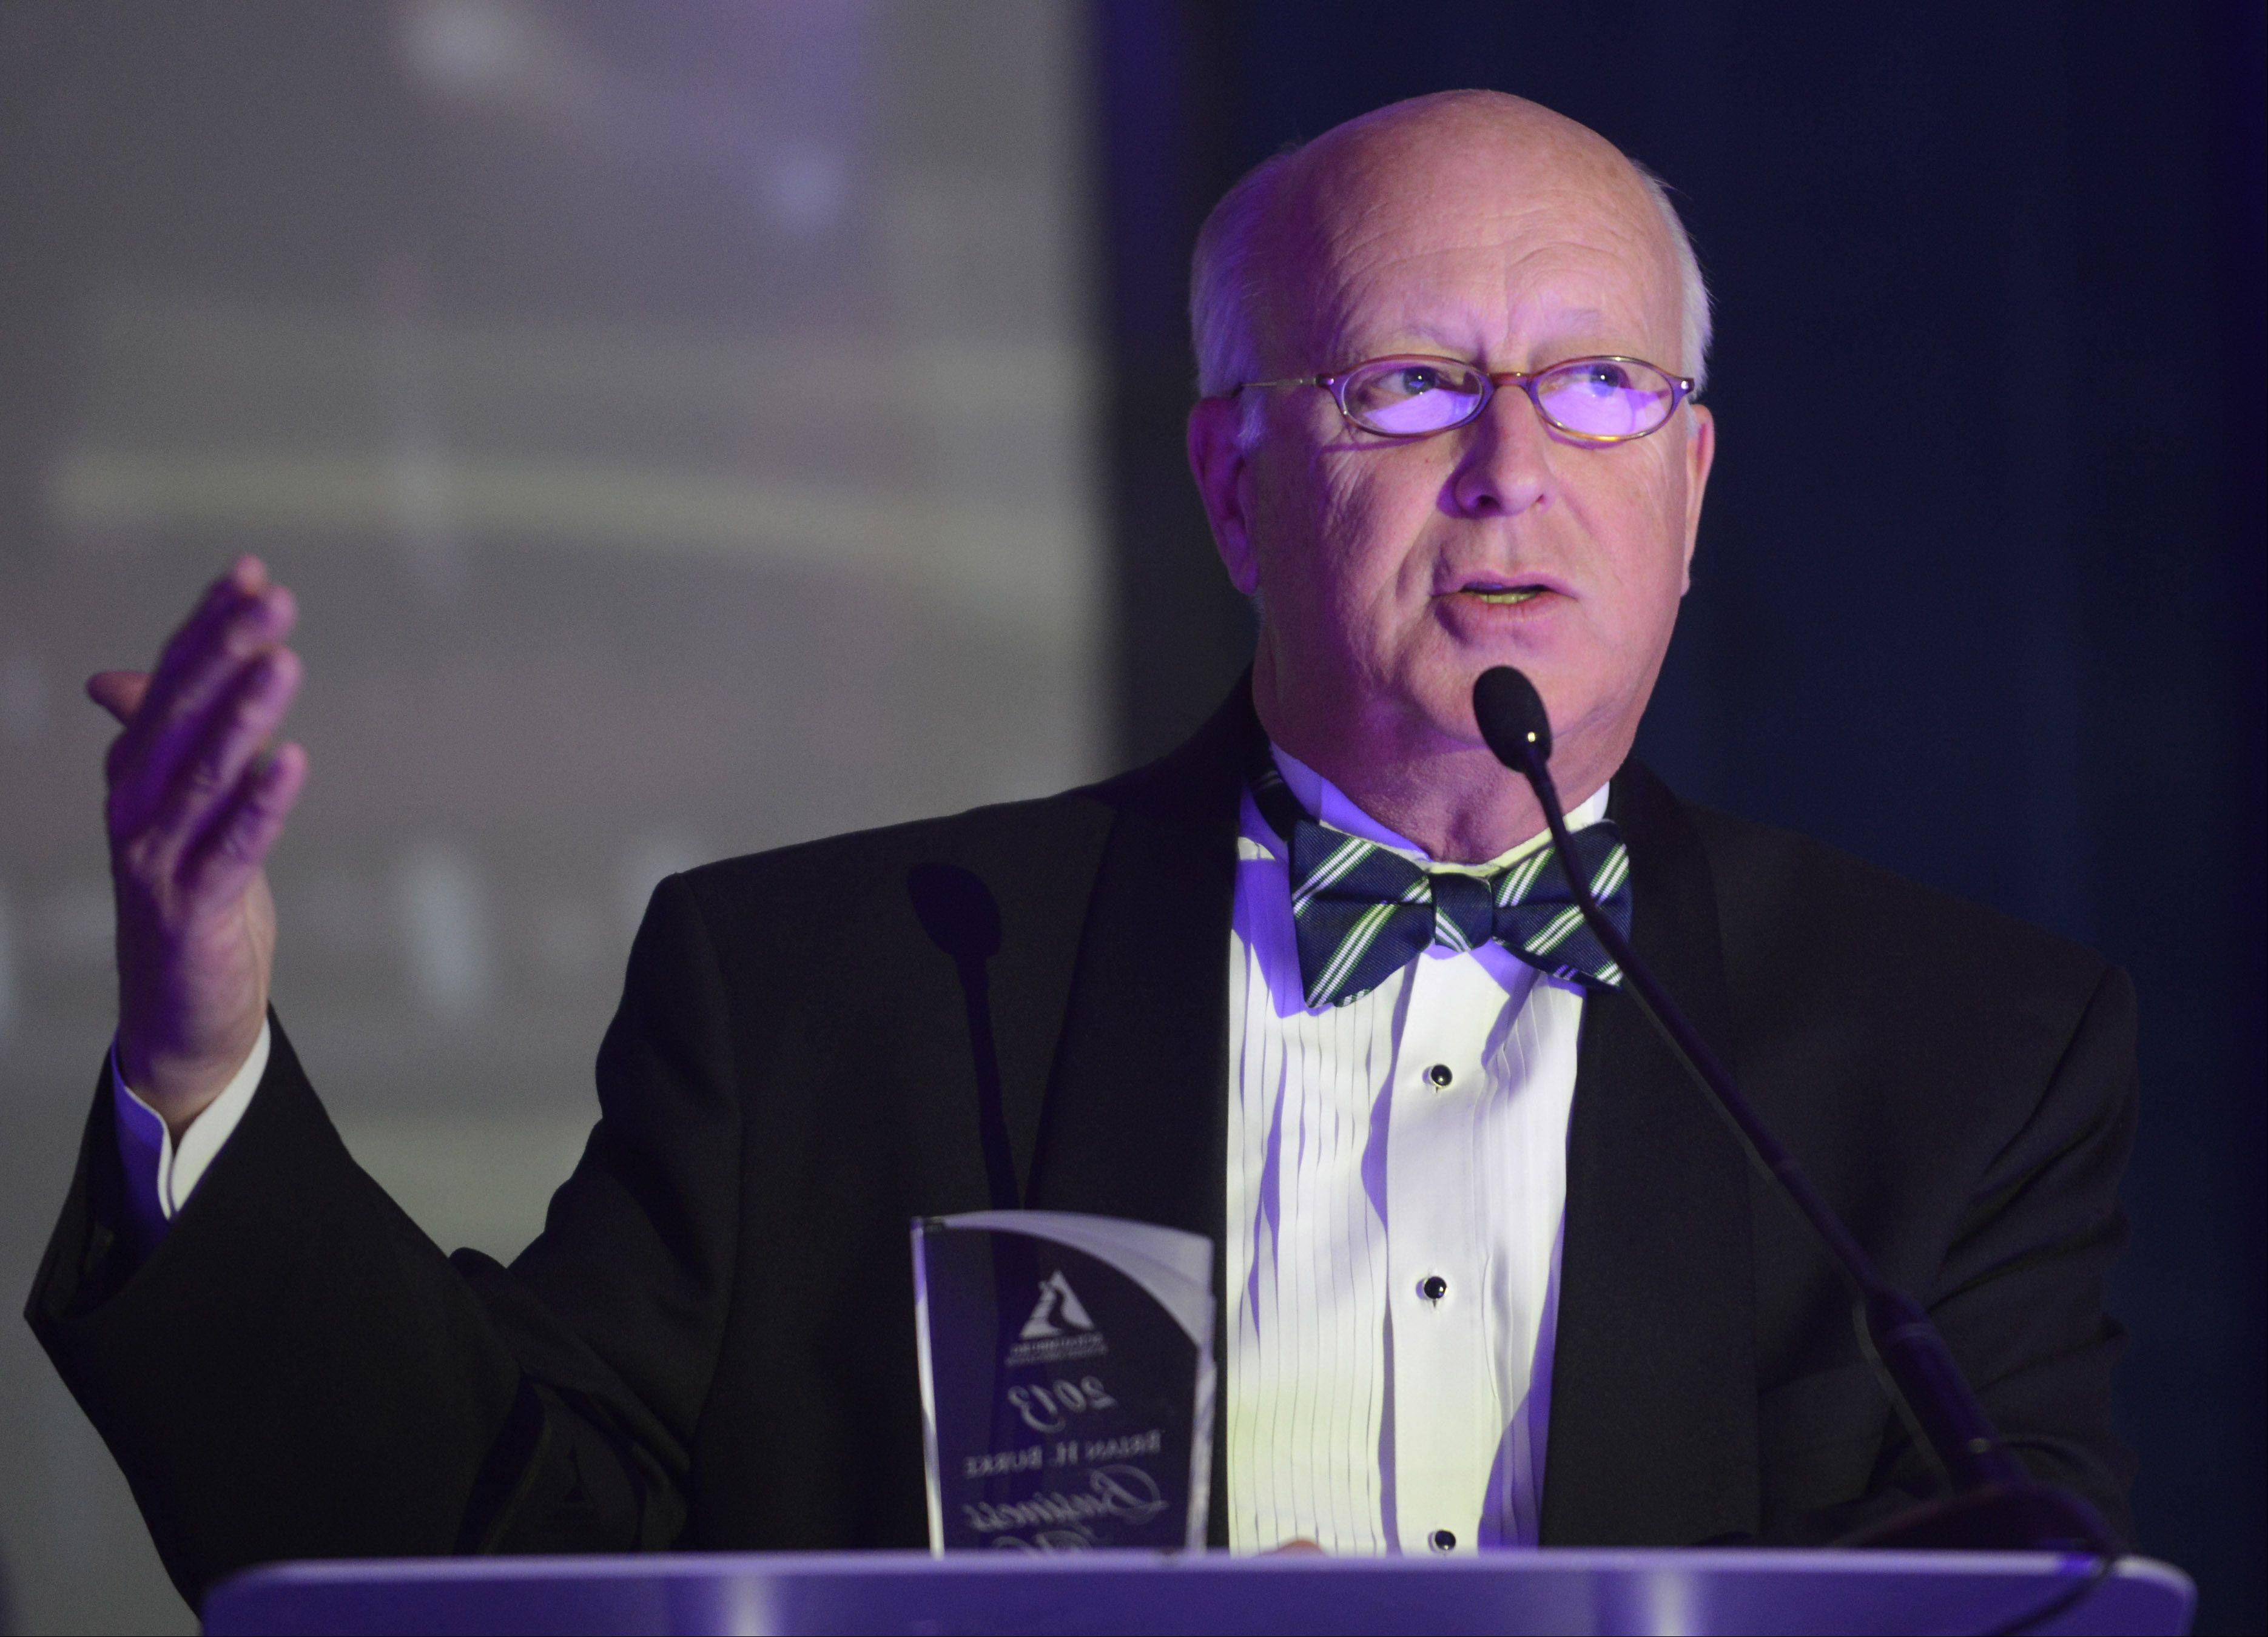 Douglas K. Ray, CEO and publisher of the Daily Herald Media Group, accepts the Brian H. Burke Business of the Year Award during the Schaumburg Business Association Toast of Schaumburg event Saturday at the Renaissance Schaumburg Convention Center.